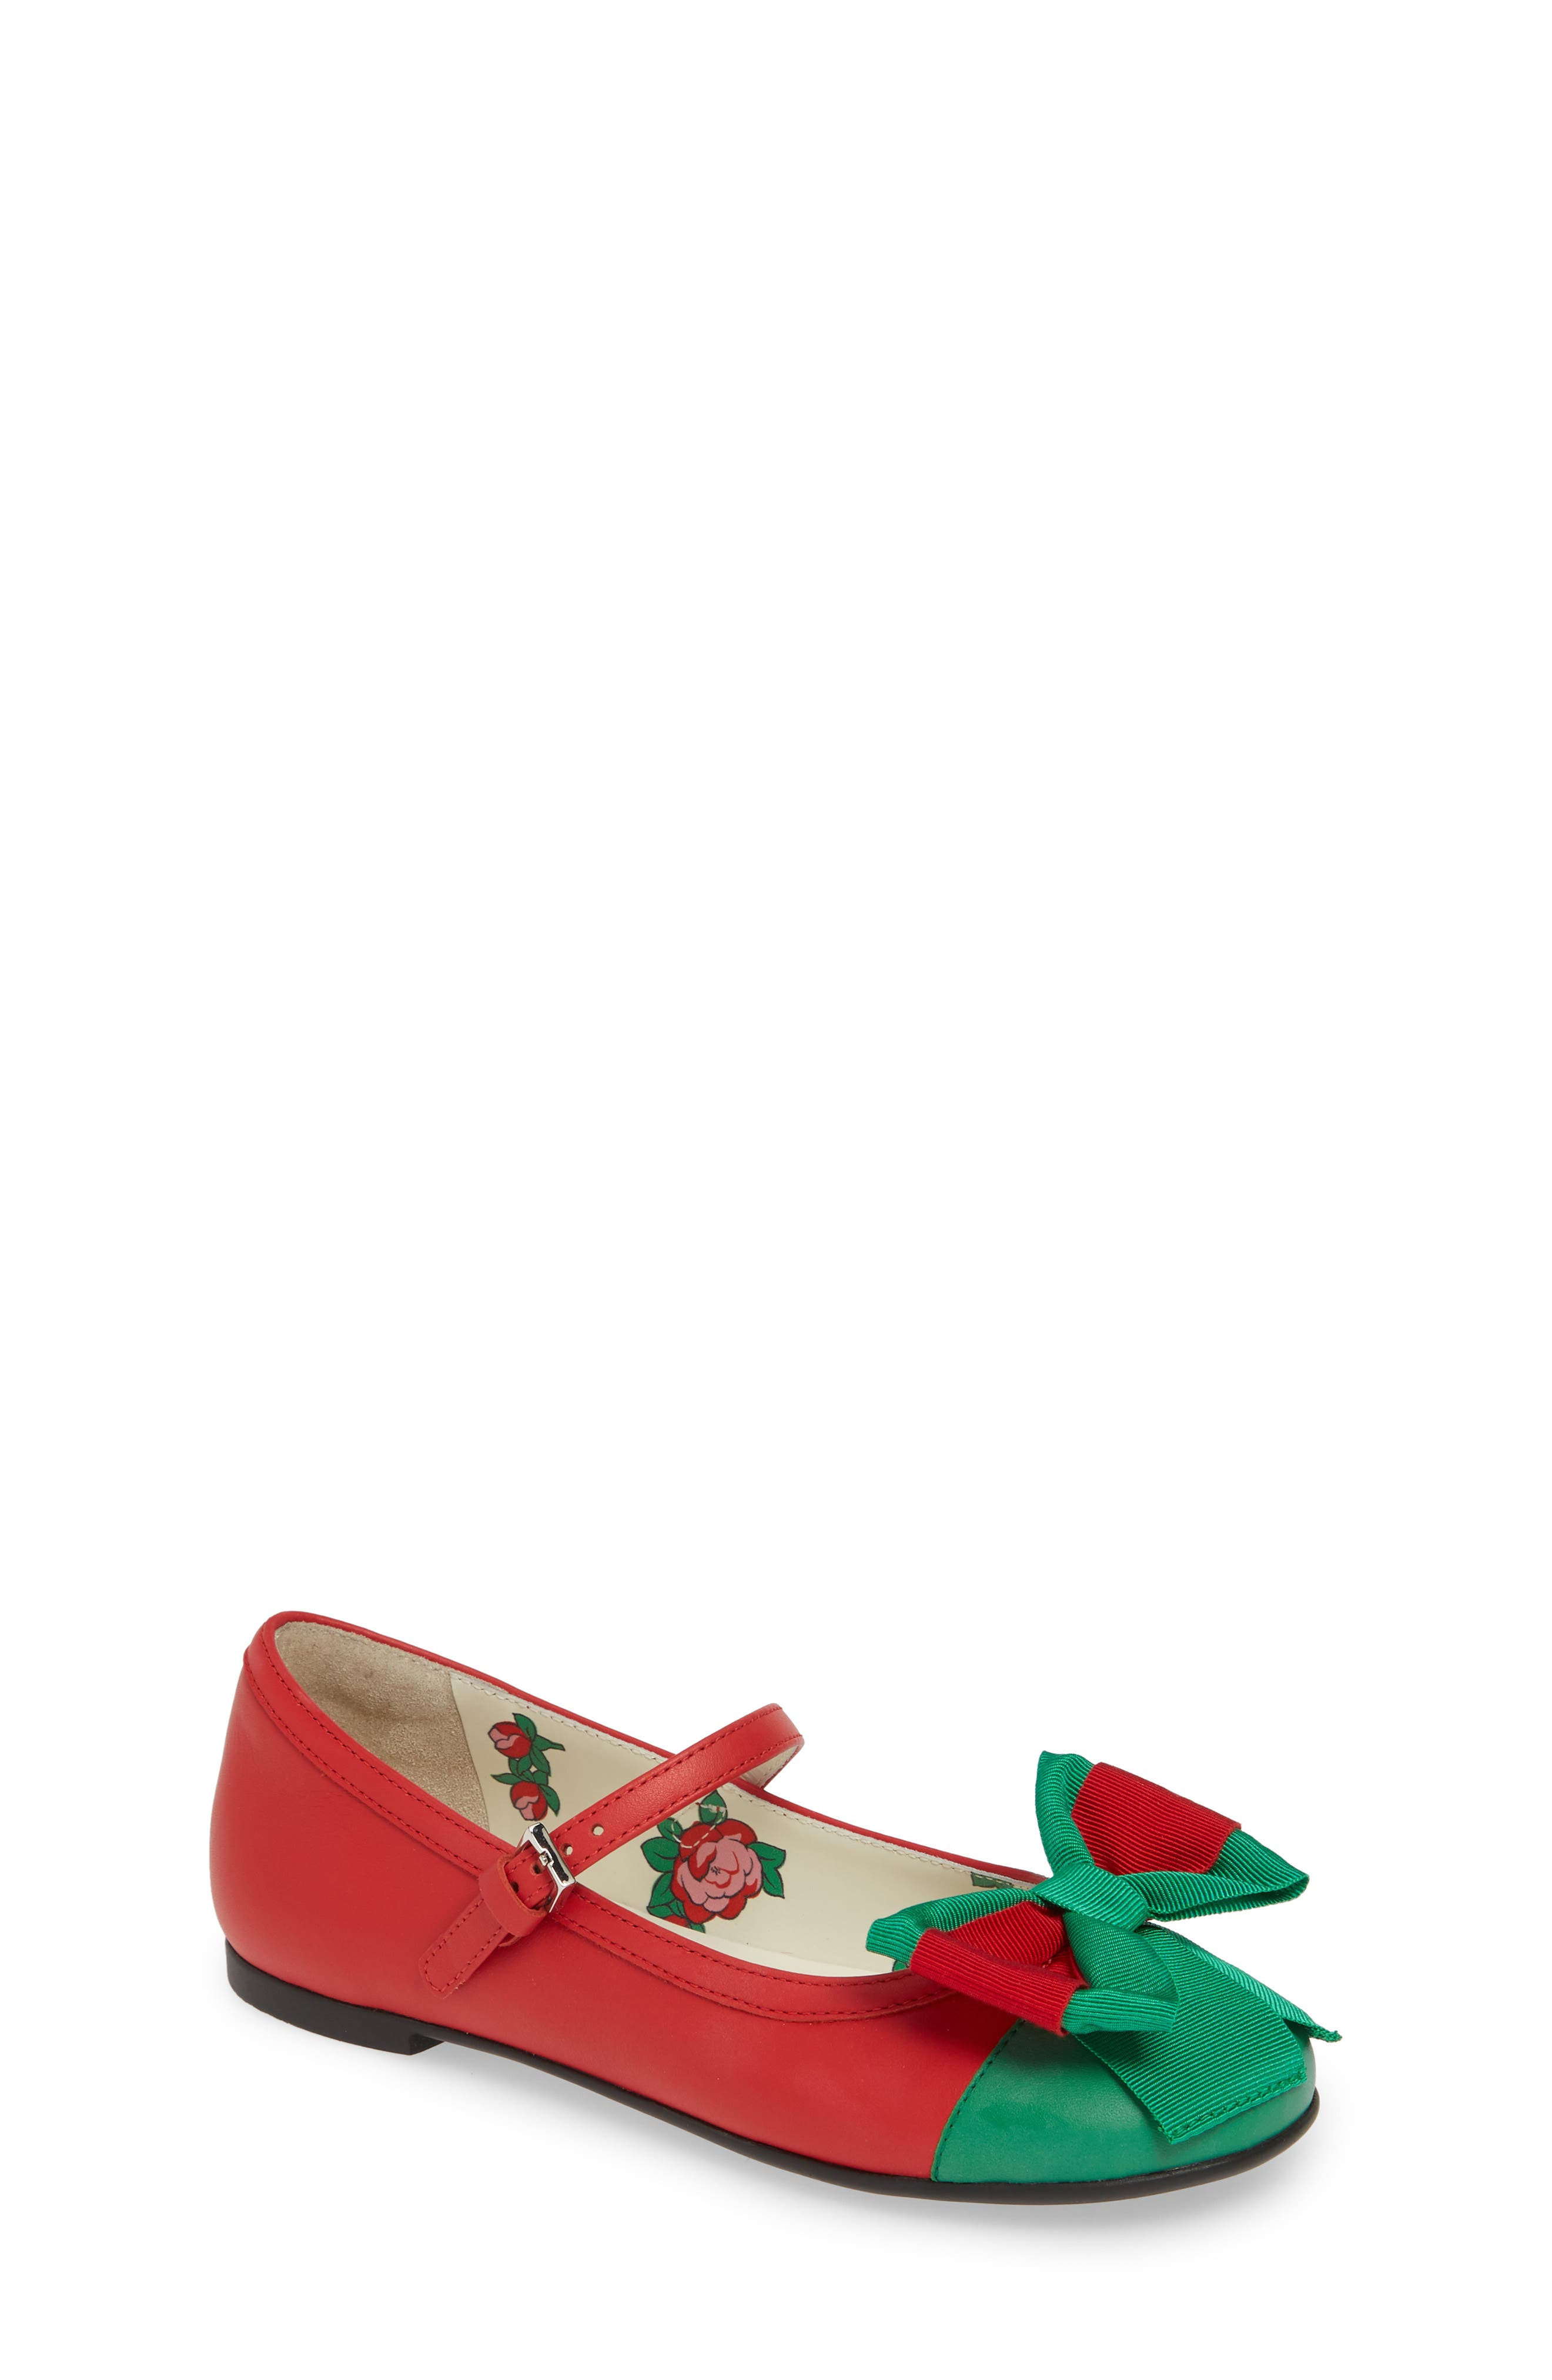 Toddler Gucci Web Bow Mary Jane Flat Size 125US  30EU  Red